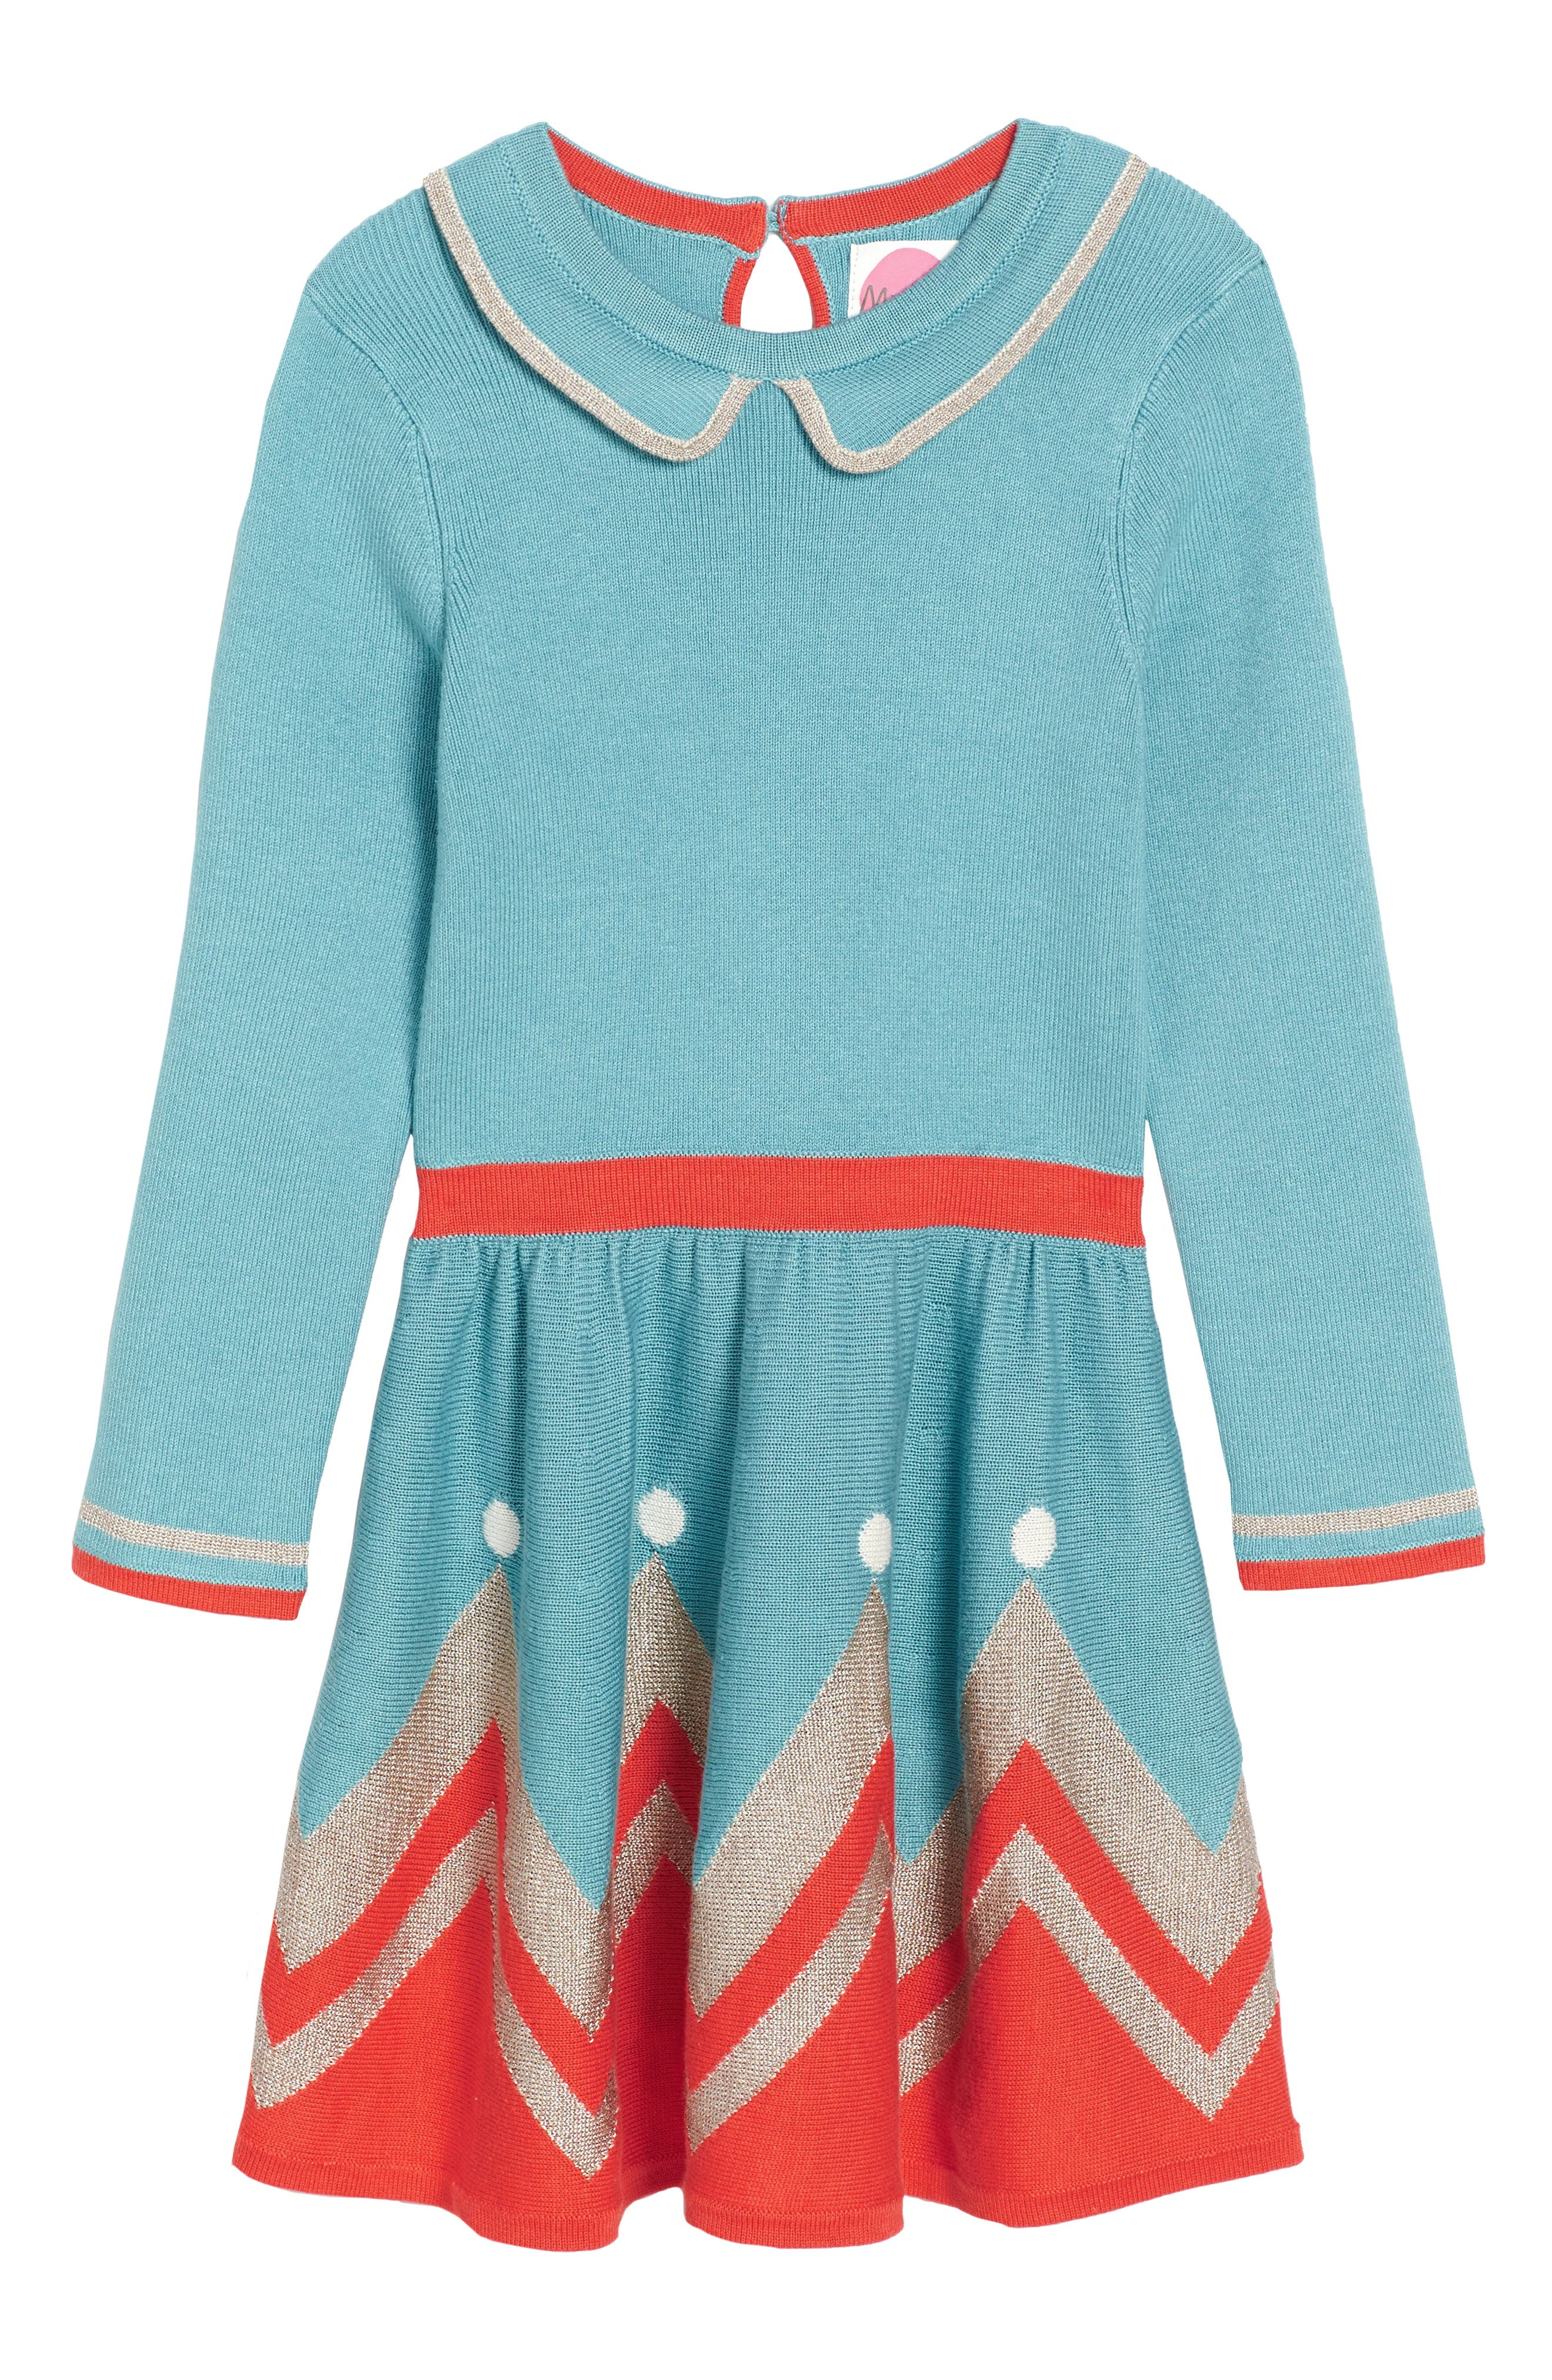 Alternate Image 1 Selected - Mini Boden Sparkly Intarsia Knit Dress (Toddler Girls, Little Girls & Big Girls)